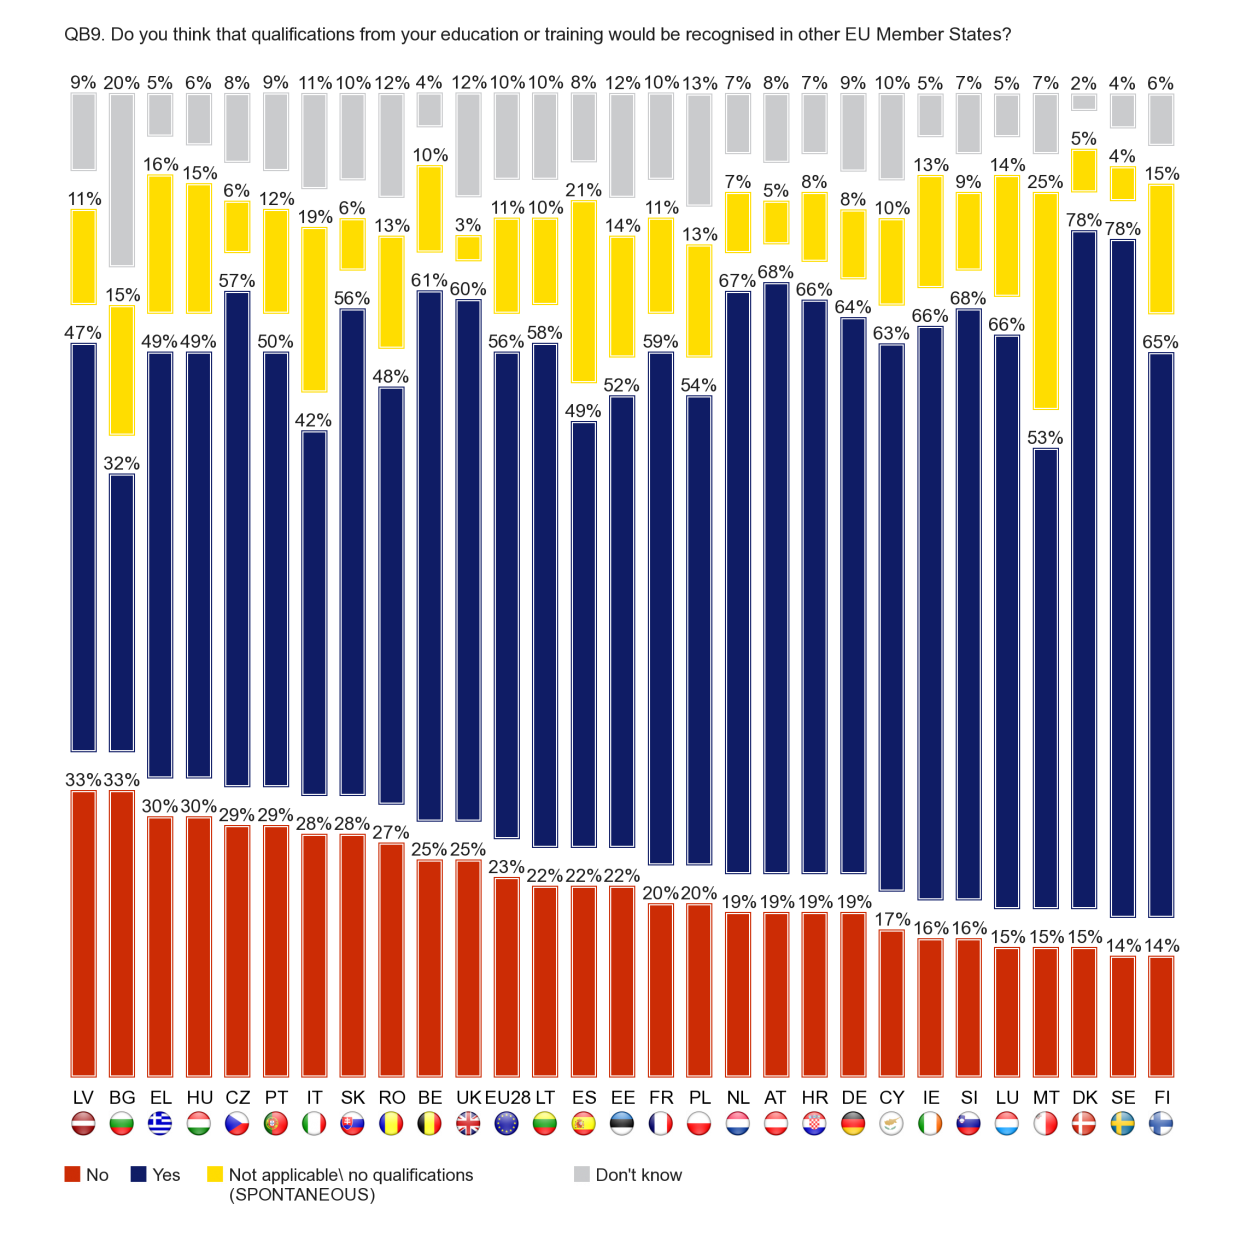 There is a fair degree of variation across individual Member States in the proportion of respondents who say that their qualifications would be recognised in other EU countries.